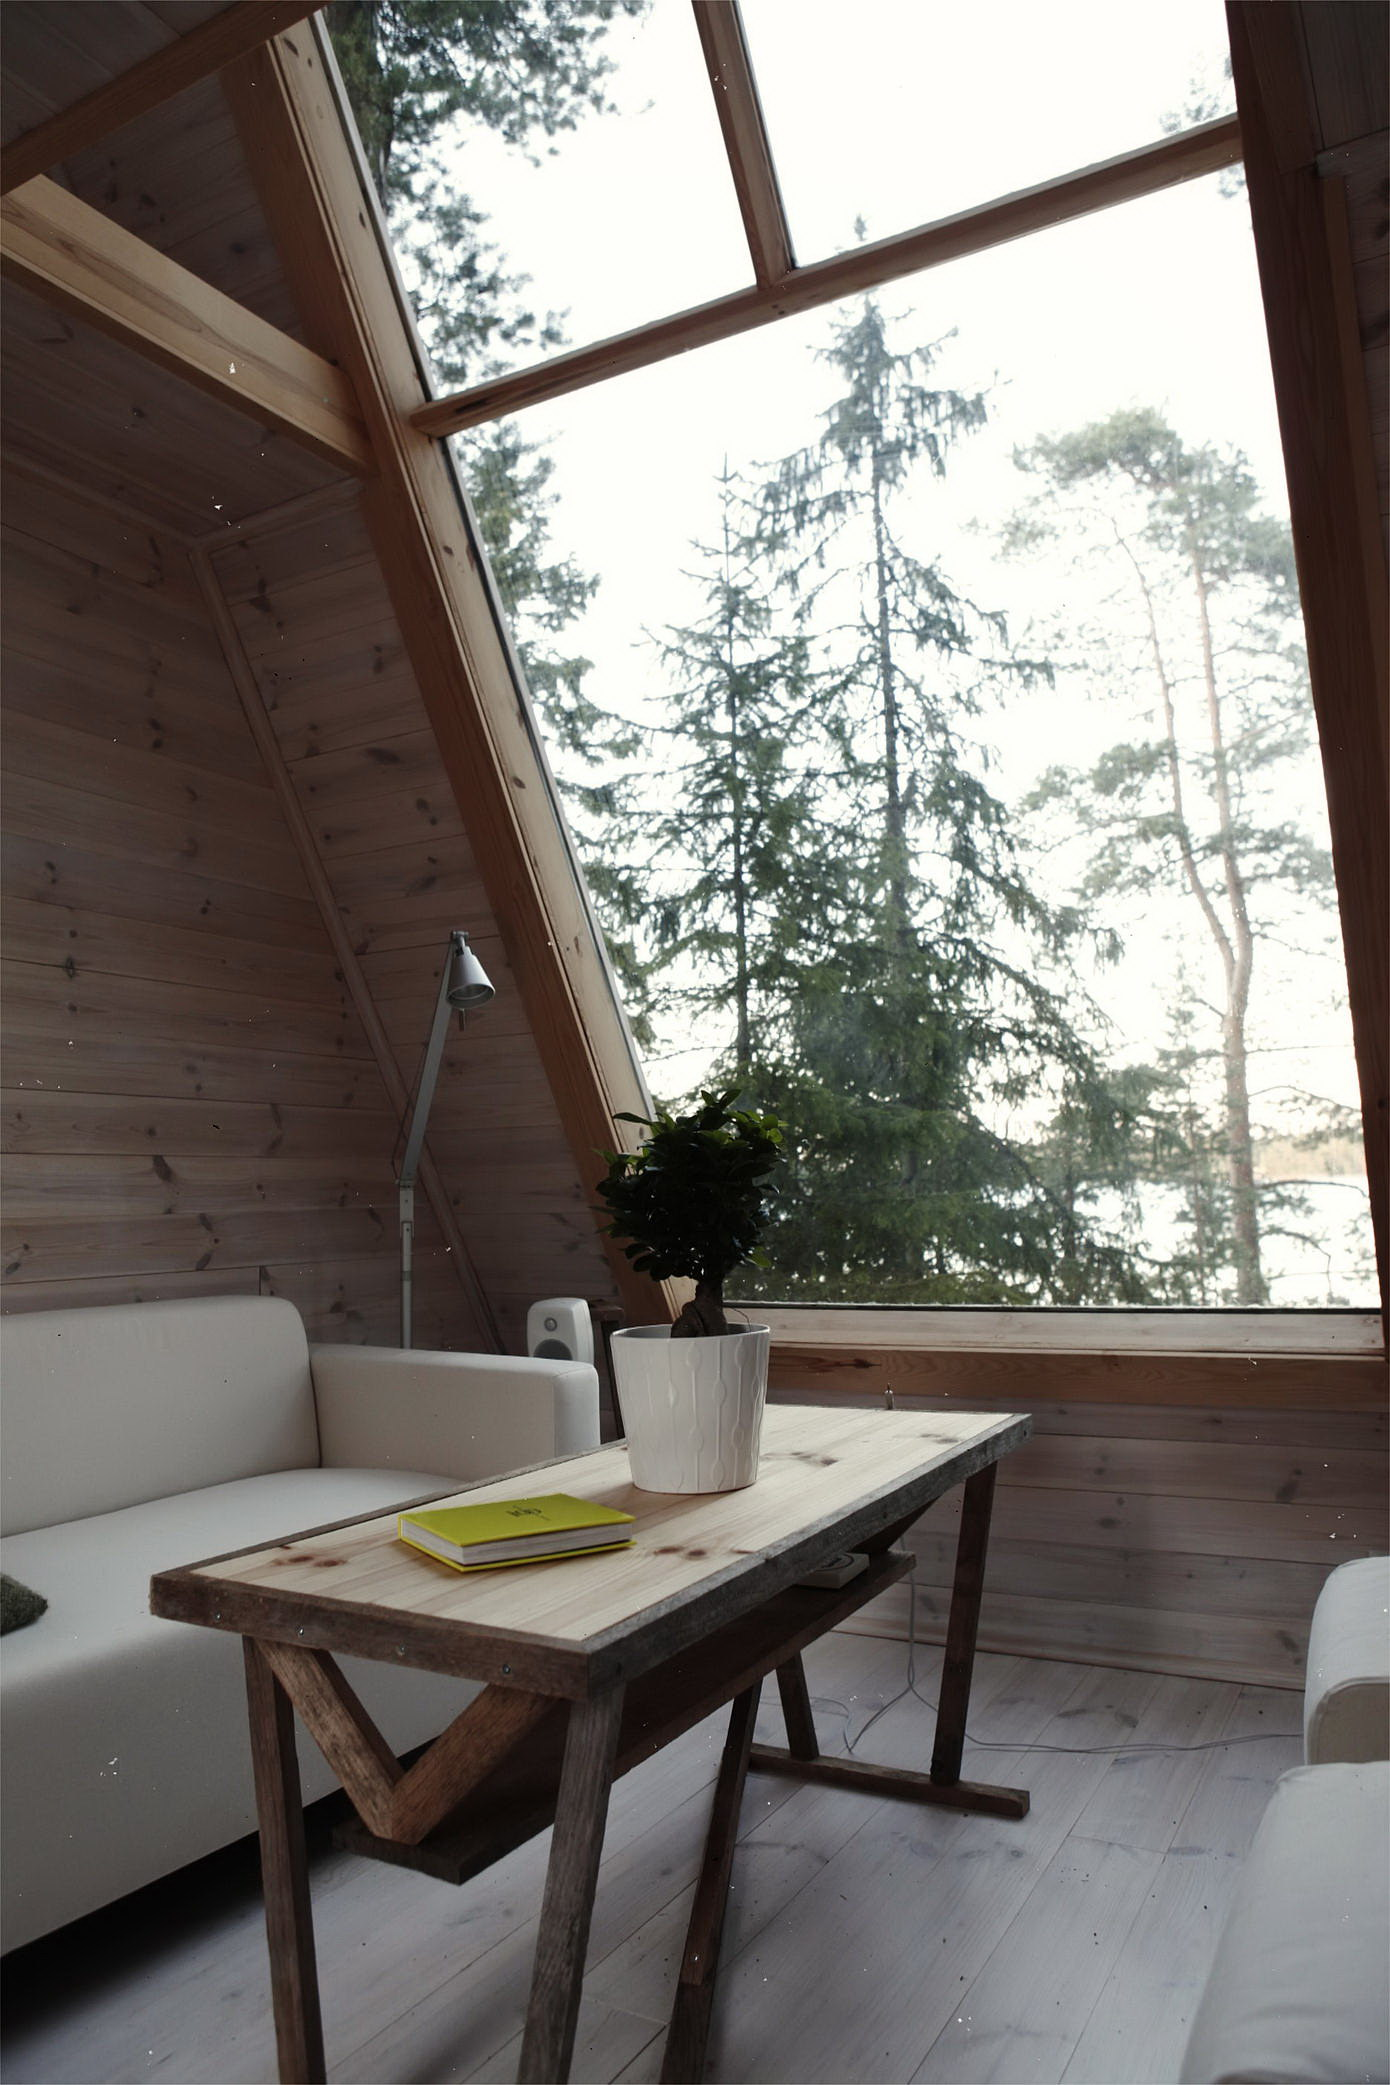 Nido   Tiny Cabin in the Finnish Woods by Robin Falck